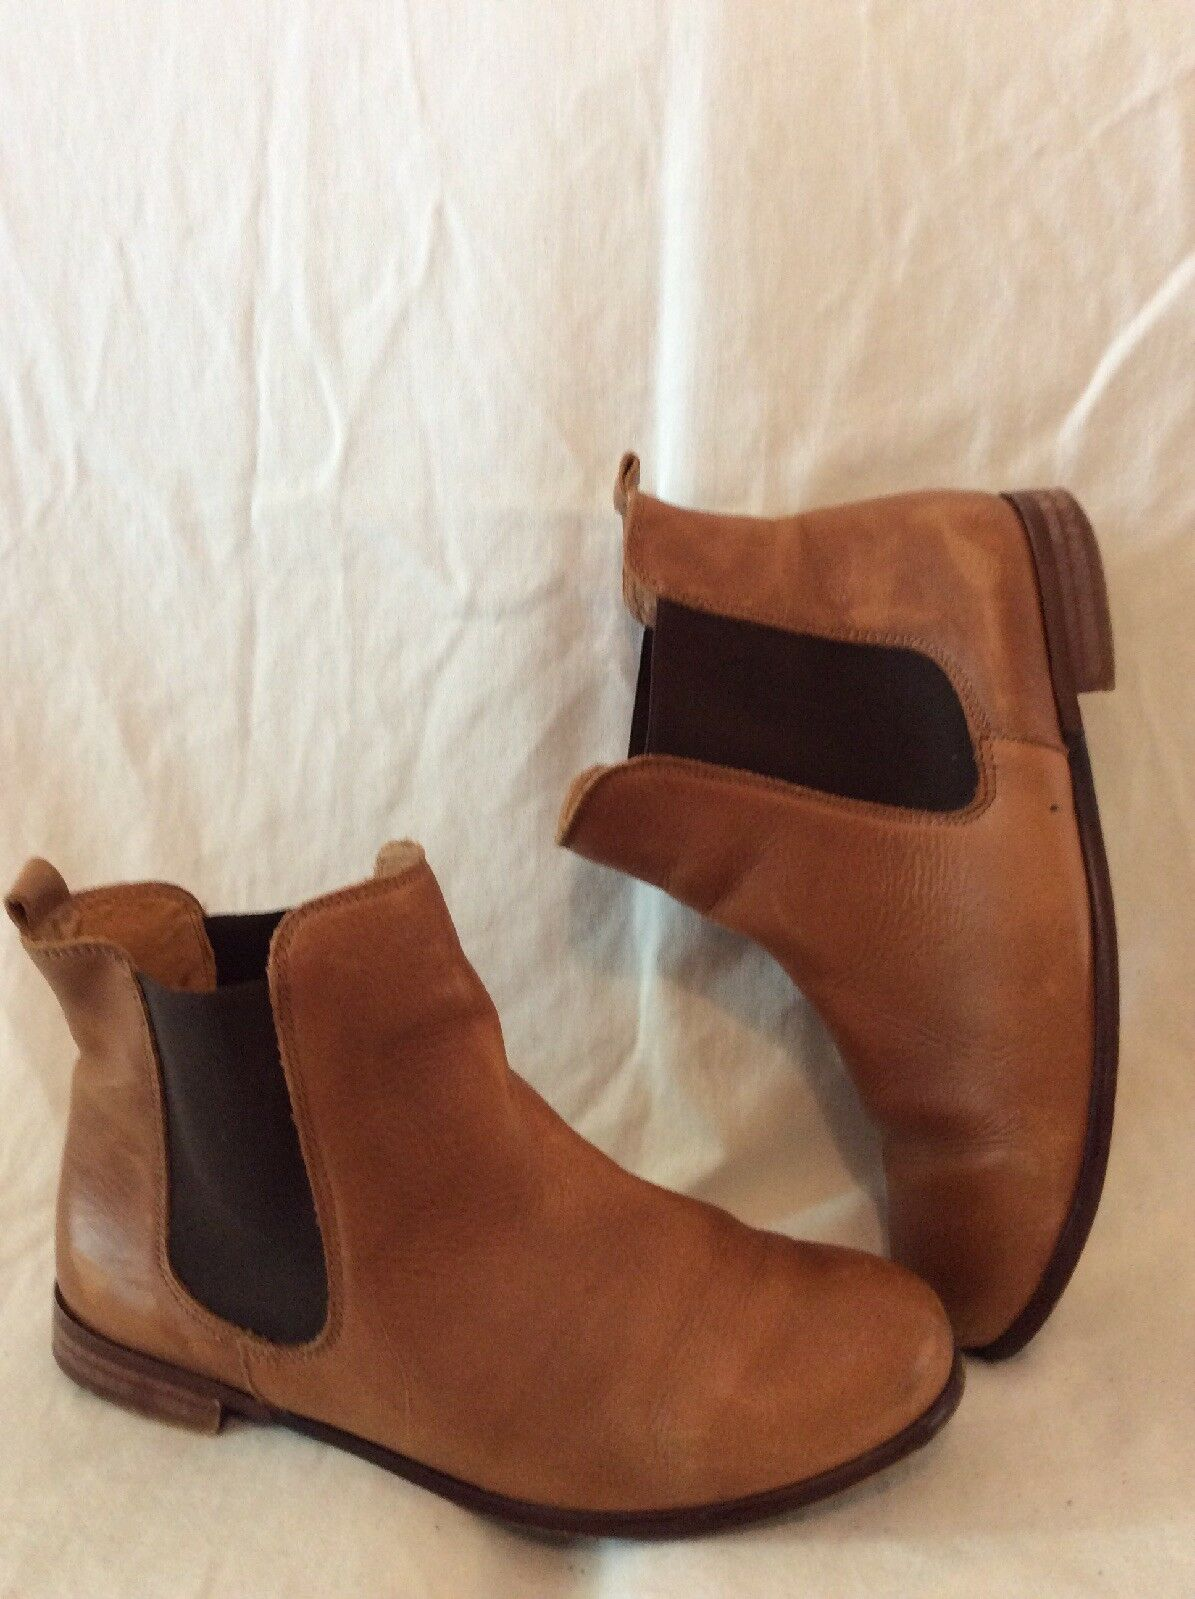 Top Shop Brown Ankle Leather Boots Size 41